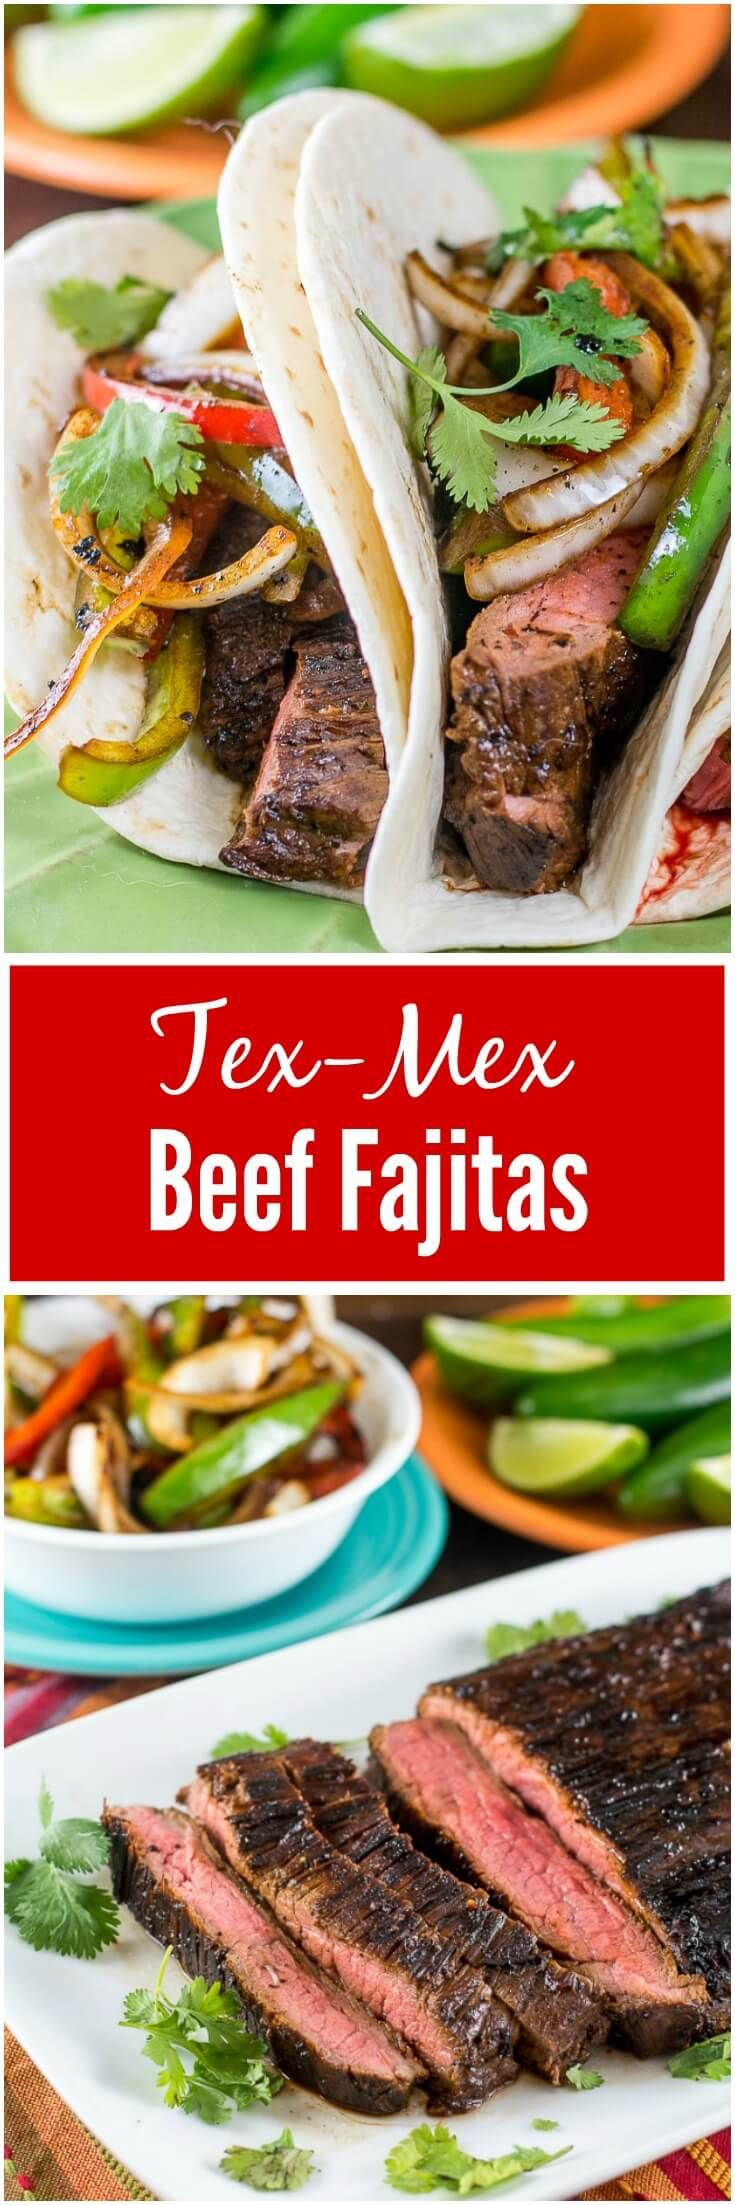 This Tex-Mex Beef Fajitas recipe, with skirt steak or flank steak, and served with sauteed onions, red and green peppers, makes an easy dinner. via…